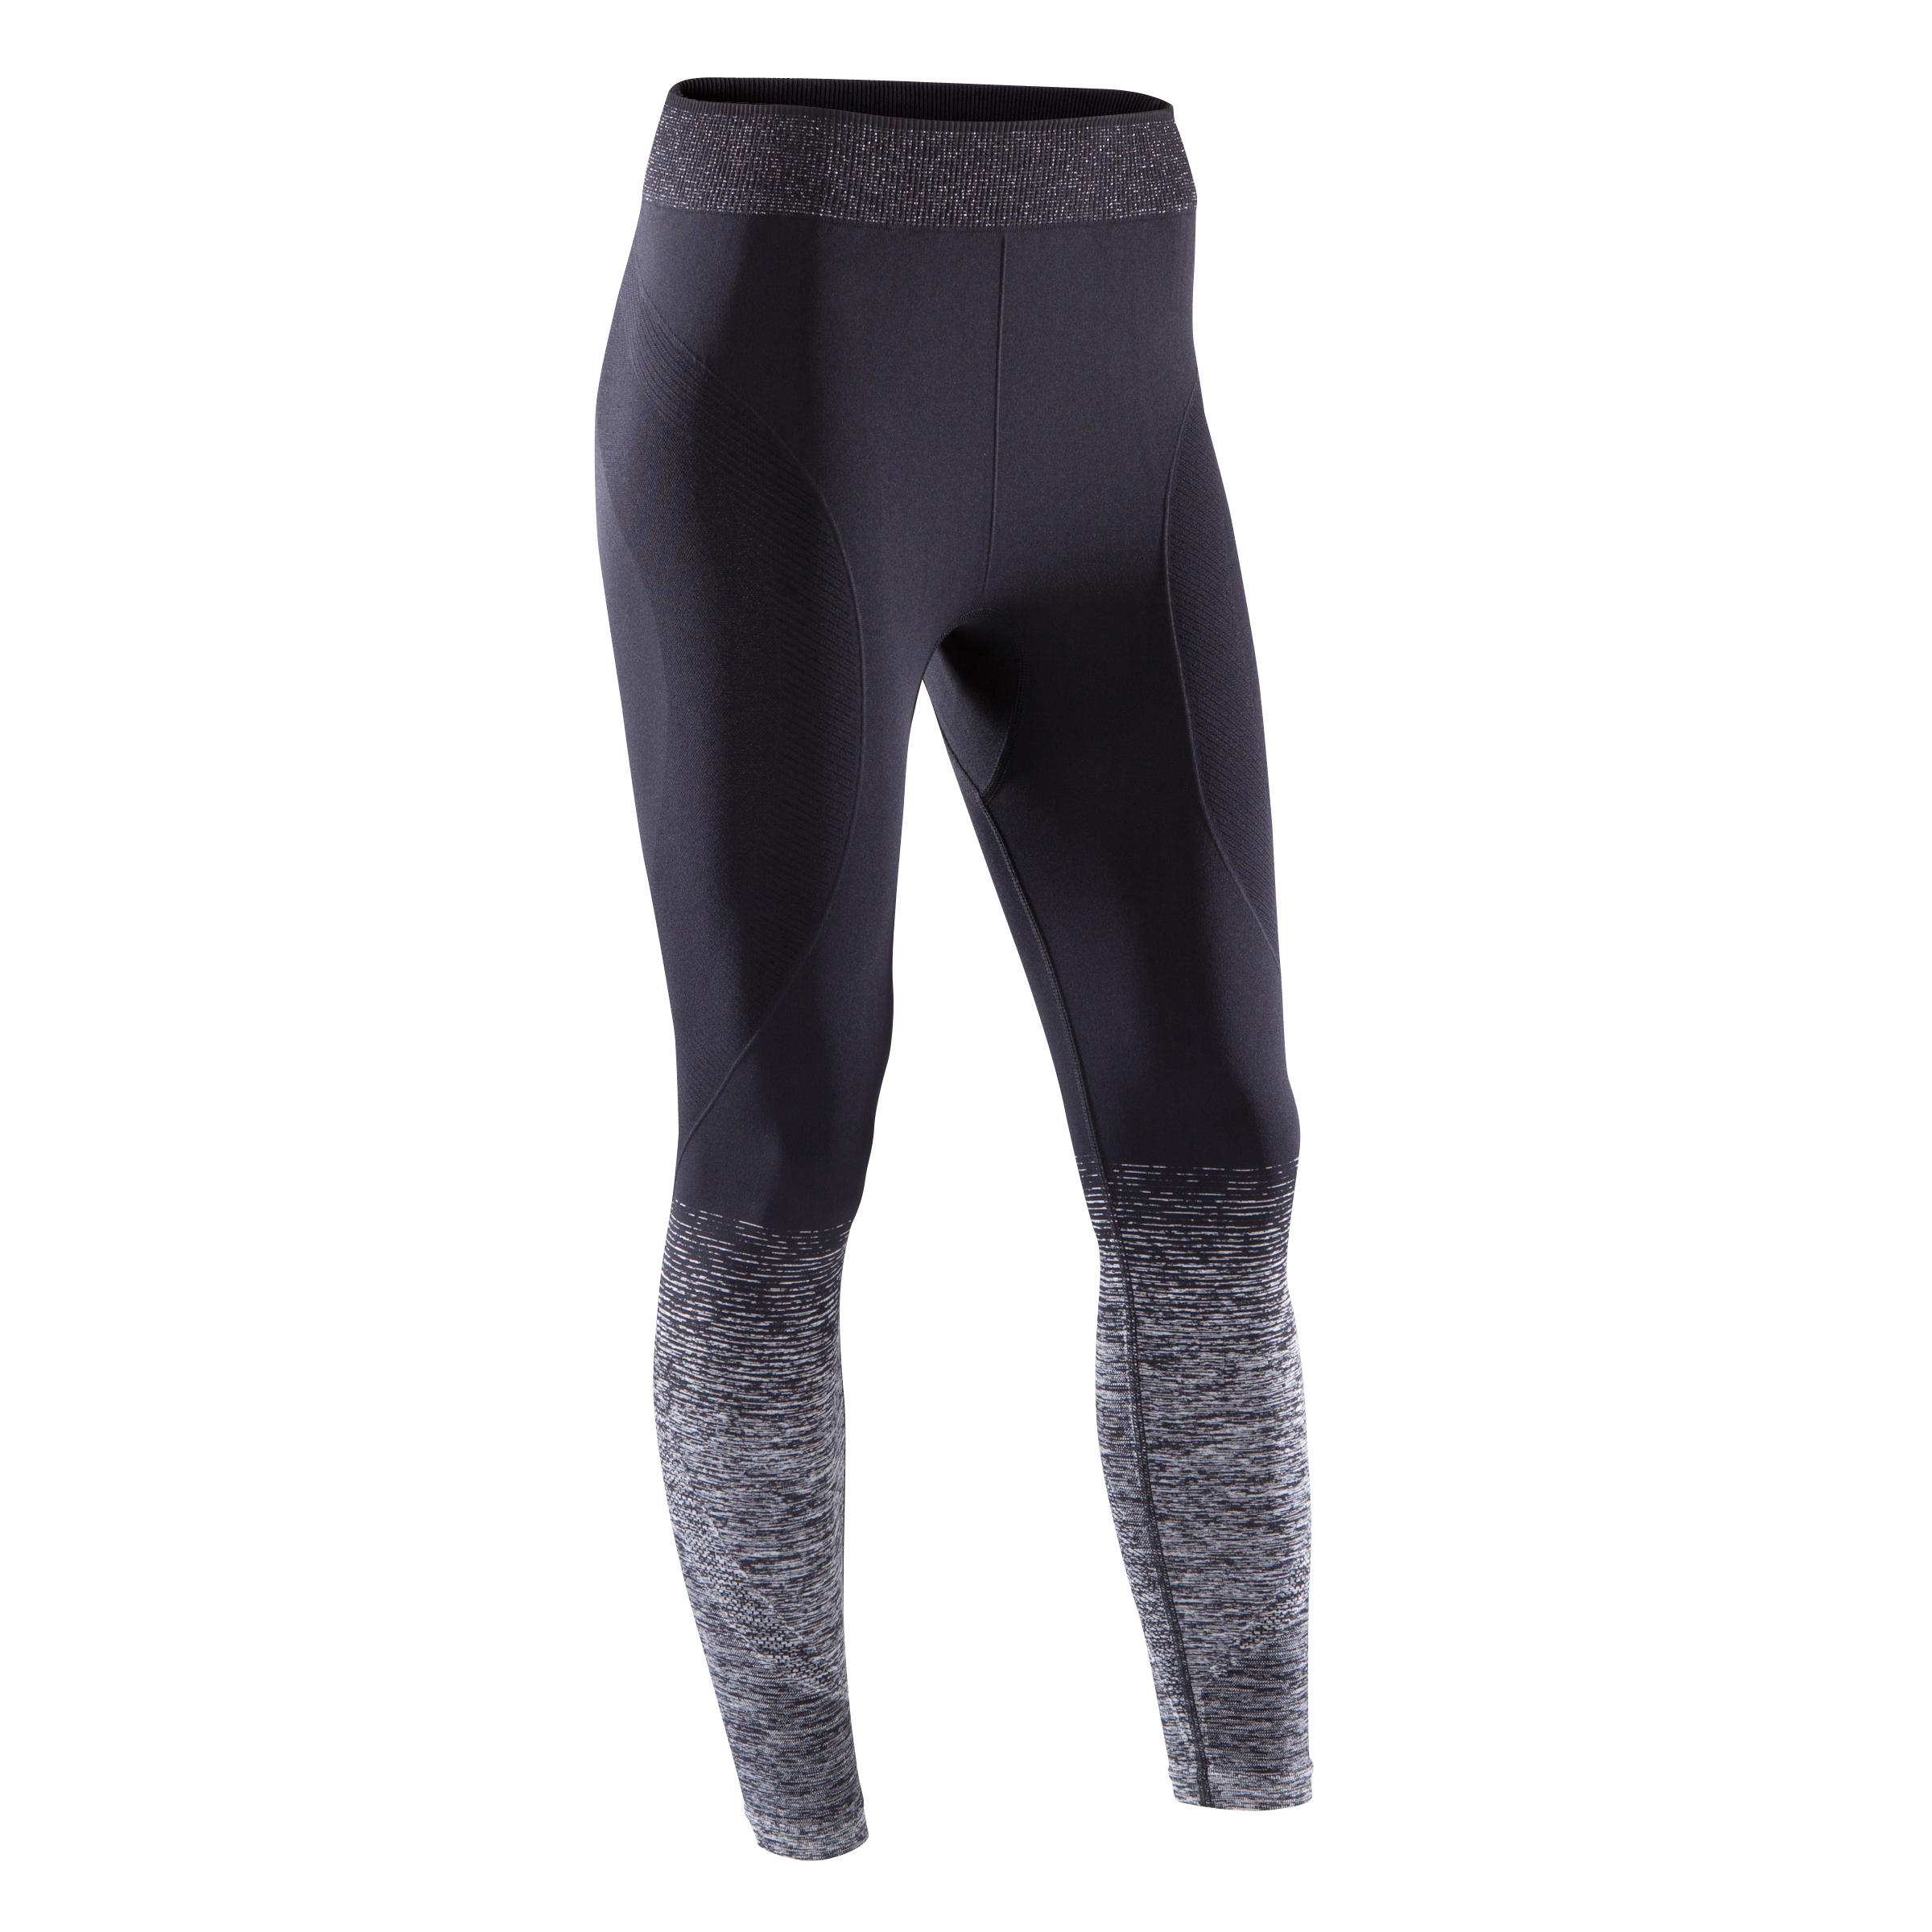 Women's Yoga 7/8 Seamless Leggings - Black/Silver